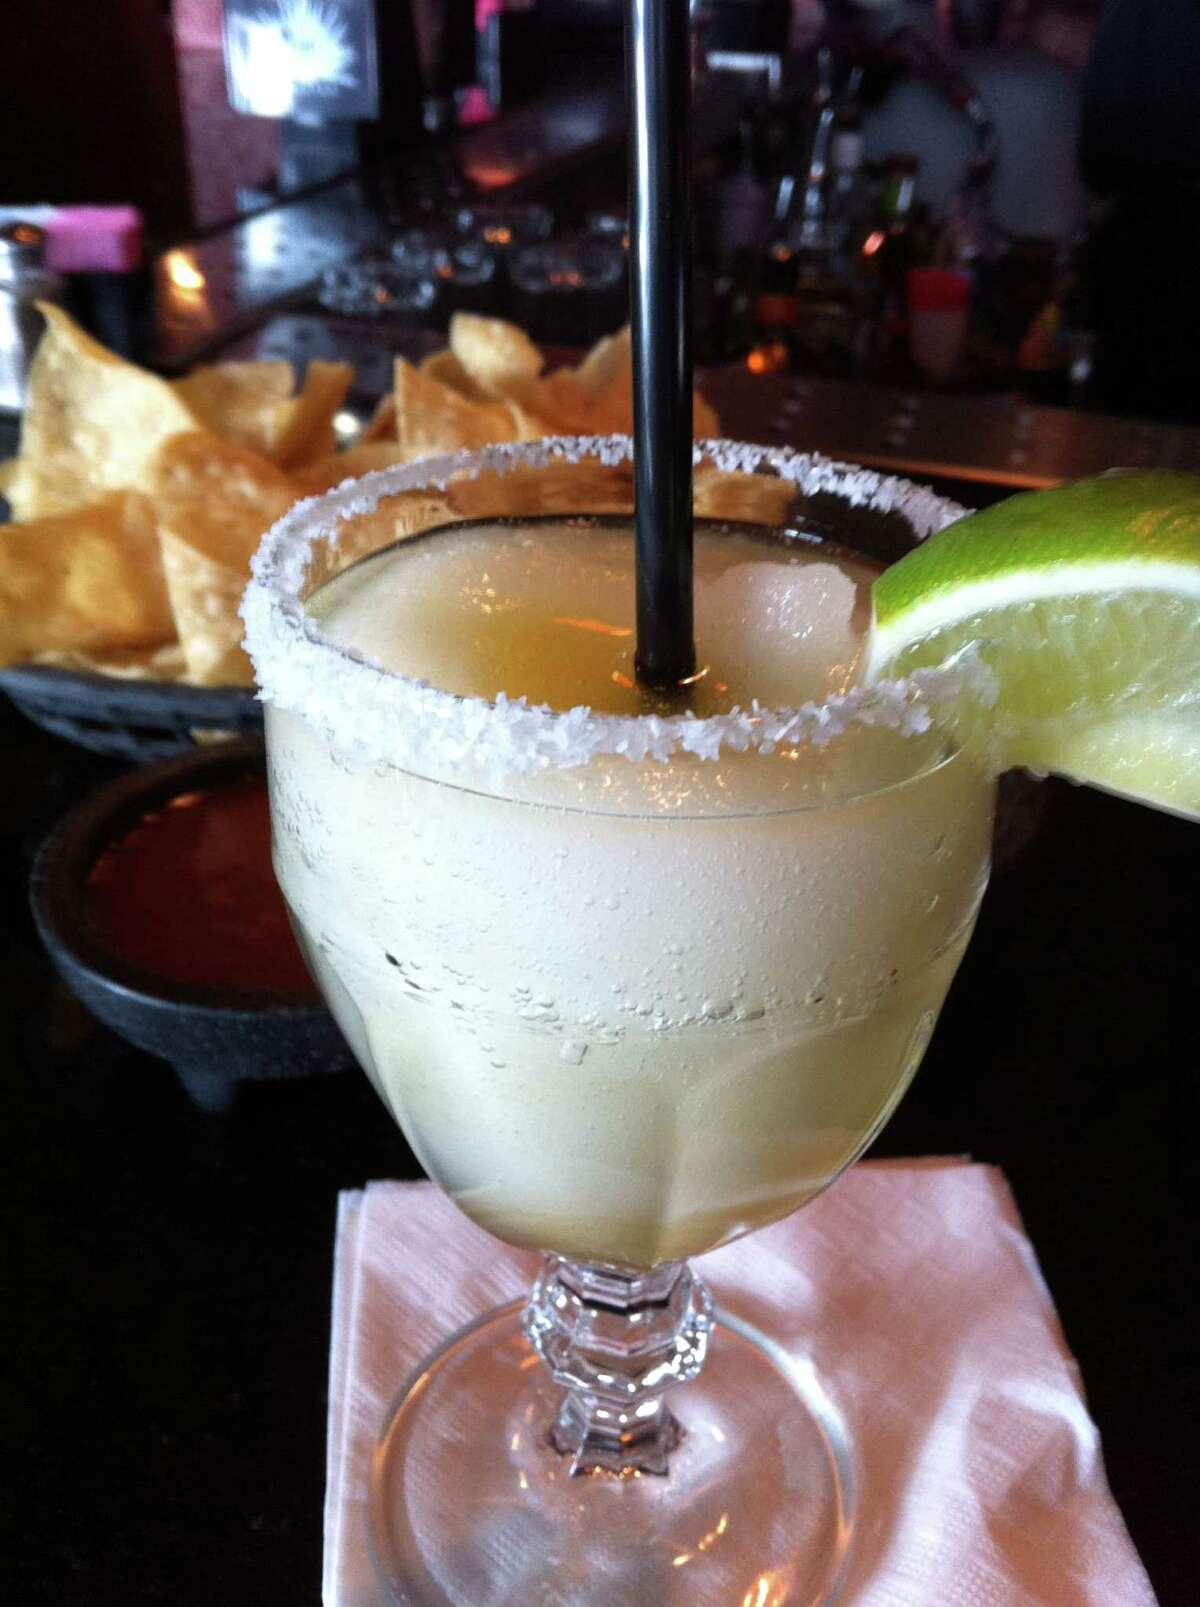 Molinas Cantina restaurants will feature $6 margaritas all day on National Tequila Day.